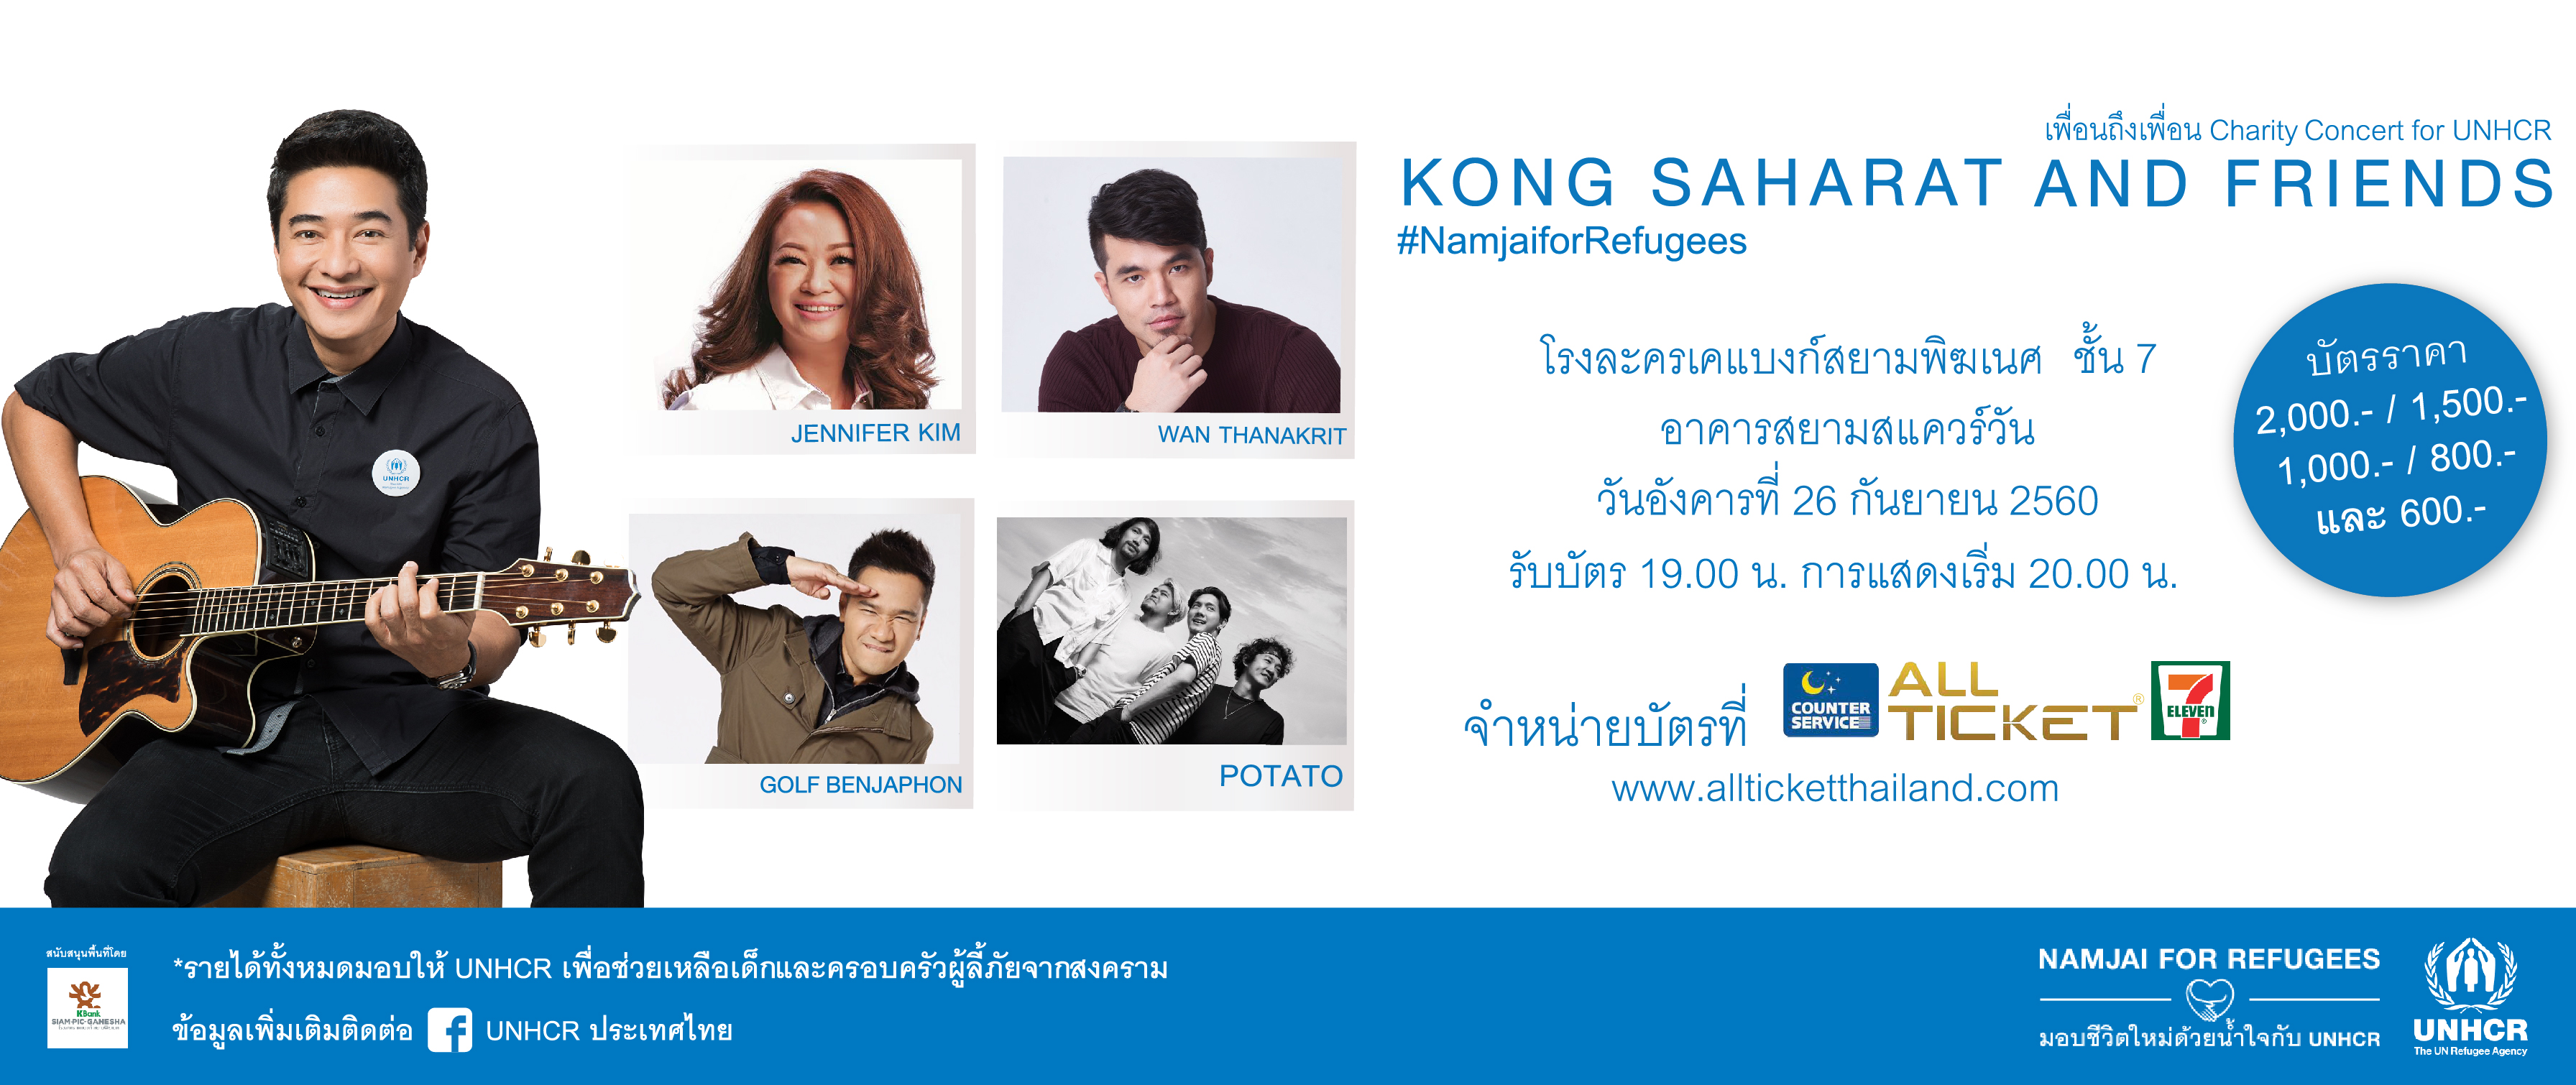 เพื่อนถึงเพื่อน Charity Concert for UNHCR Kong Saharat and Friends